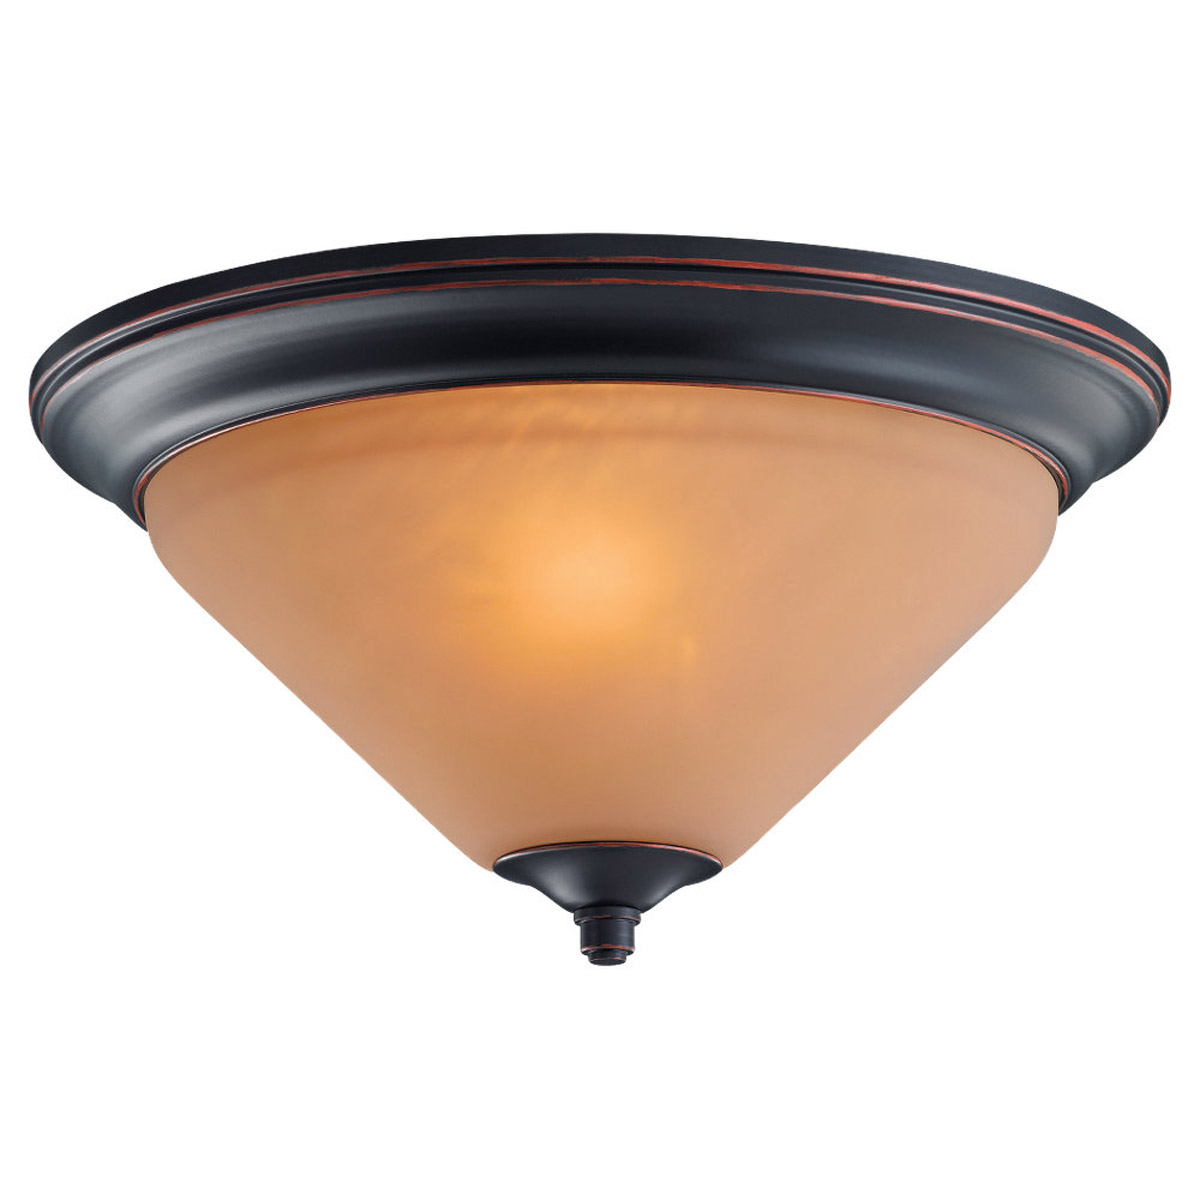 Sea Gull Lighting Belair 2 Light Flush Mount in Vintage Brown 75790-862 photo